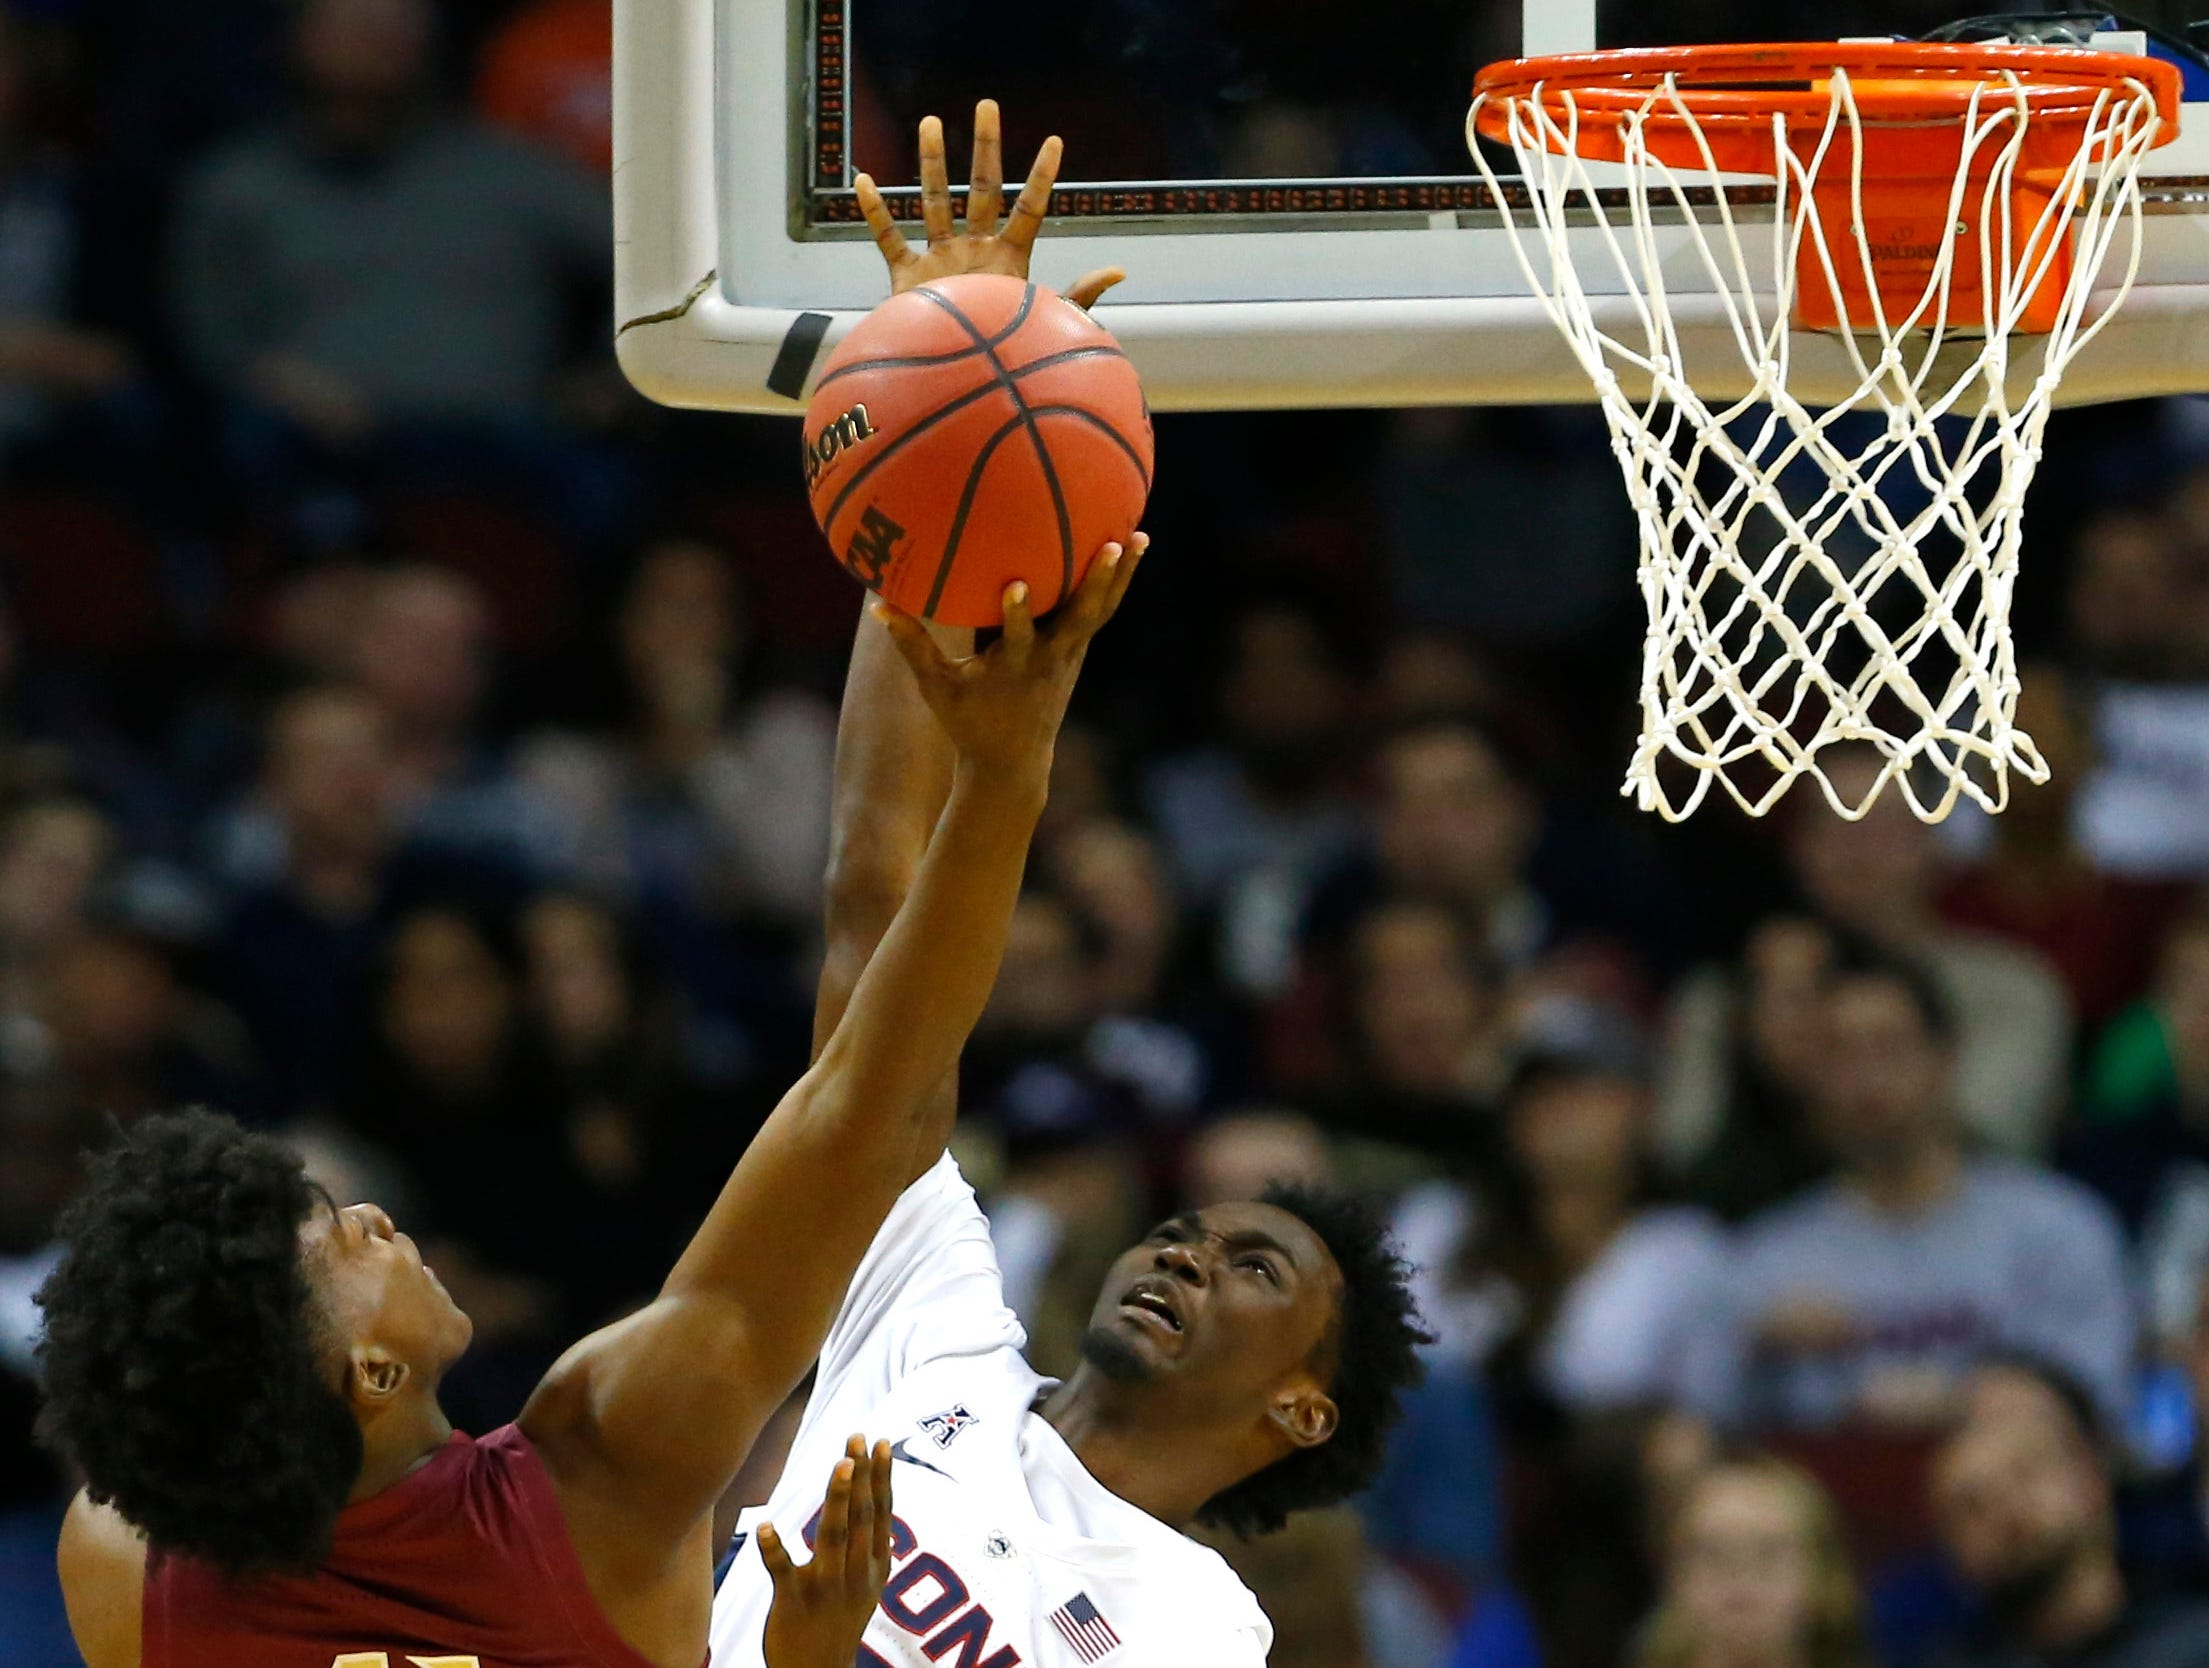 Dec 8, 2018; Newark, NJ, USA; Connecticut Huskies guard Sidney Wilson (15) defends against  Florida State Seminoles guard Terance Mann (41) during                                                                                                                                                                               the second half at Prudential Center. Mandatory Credit: Noah K. Murray-USA TODAY Sports